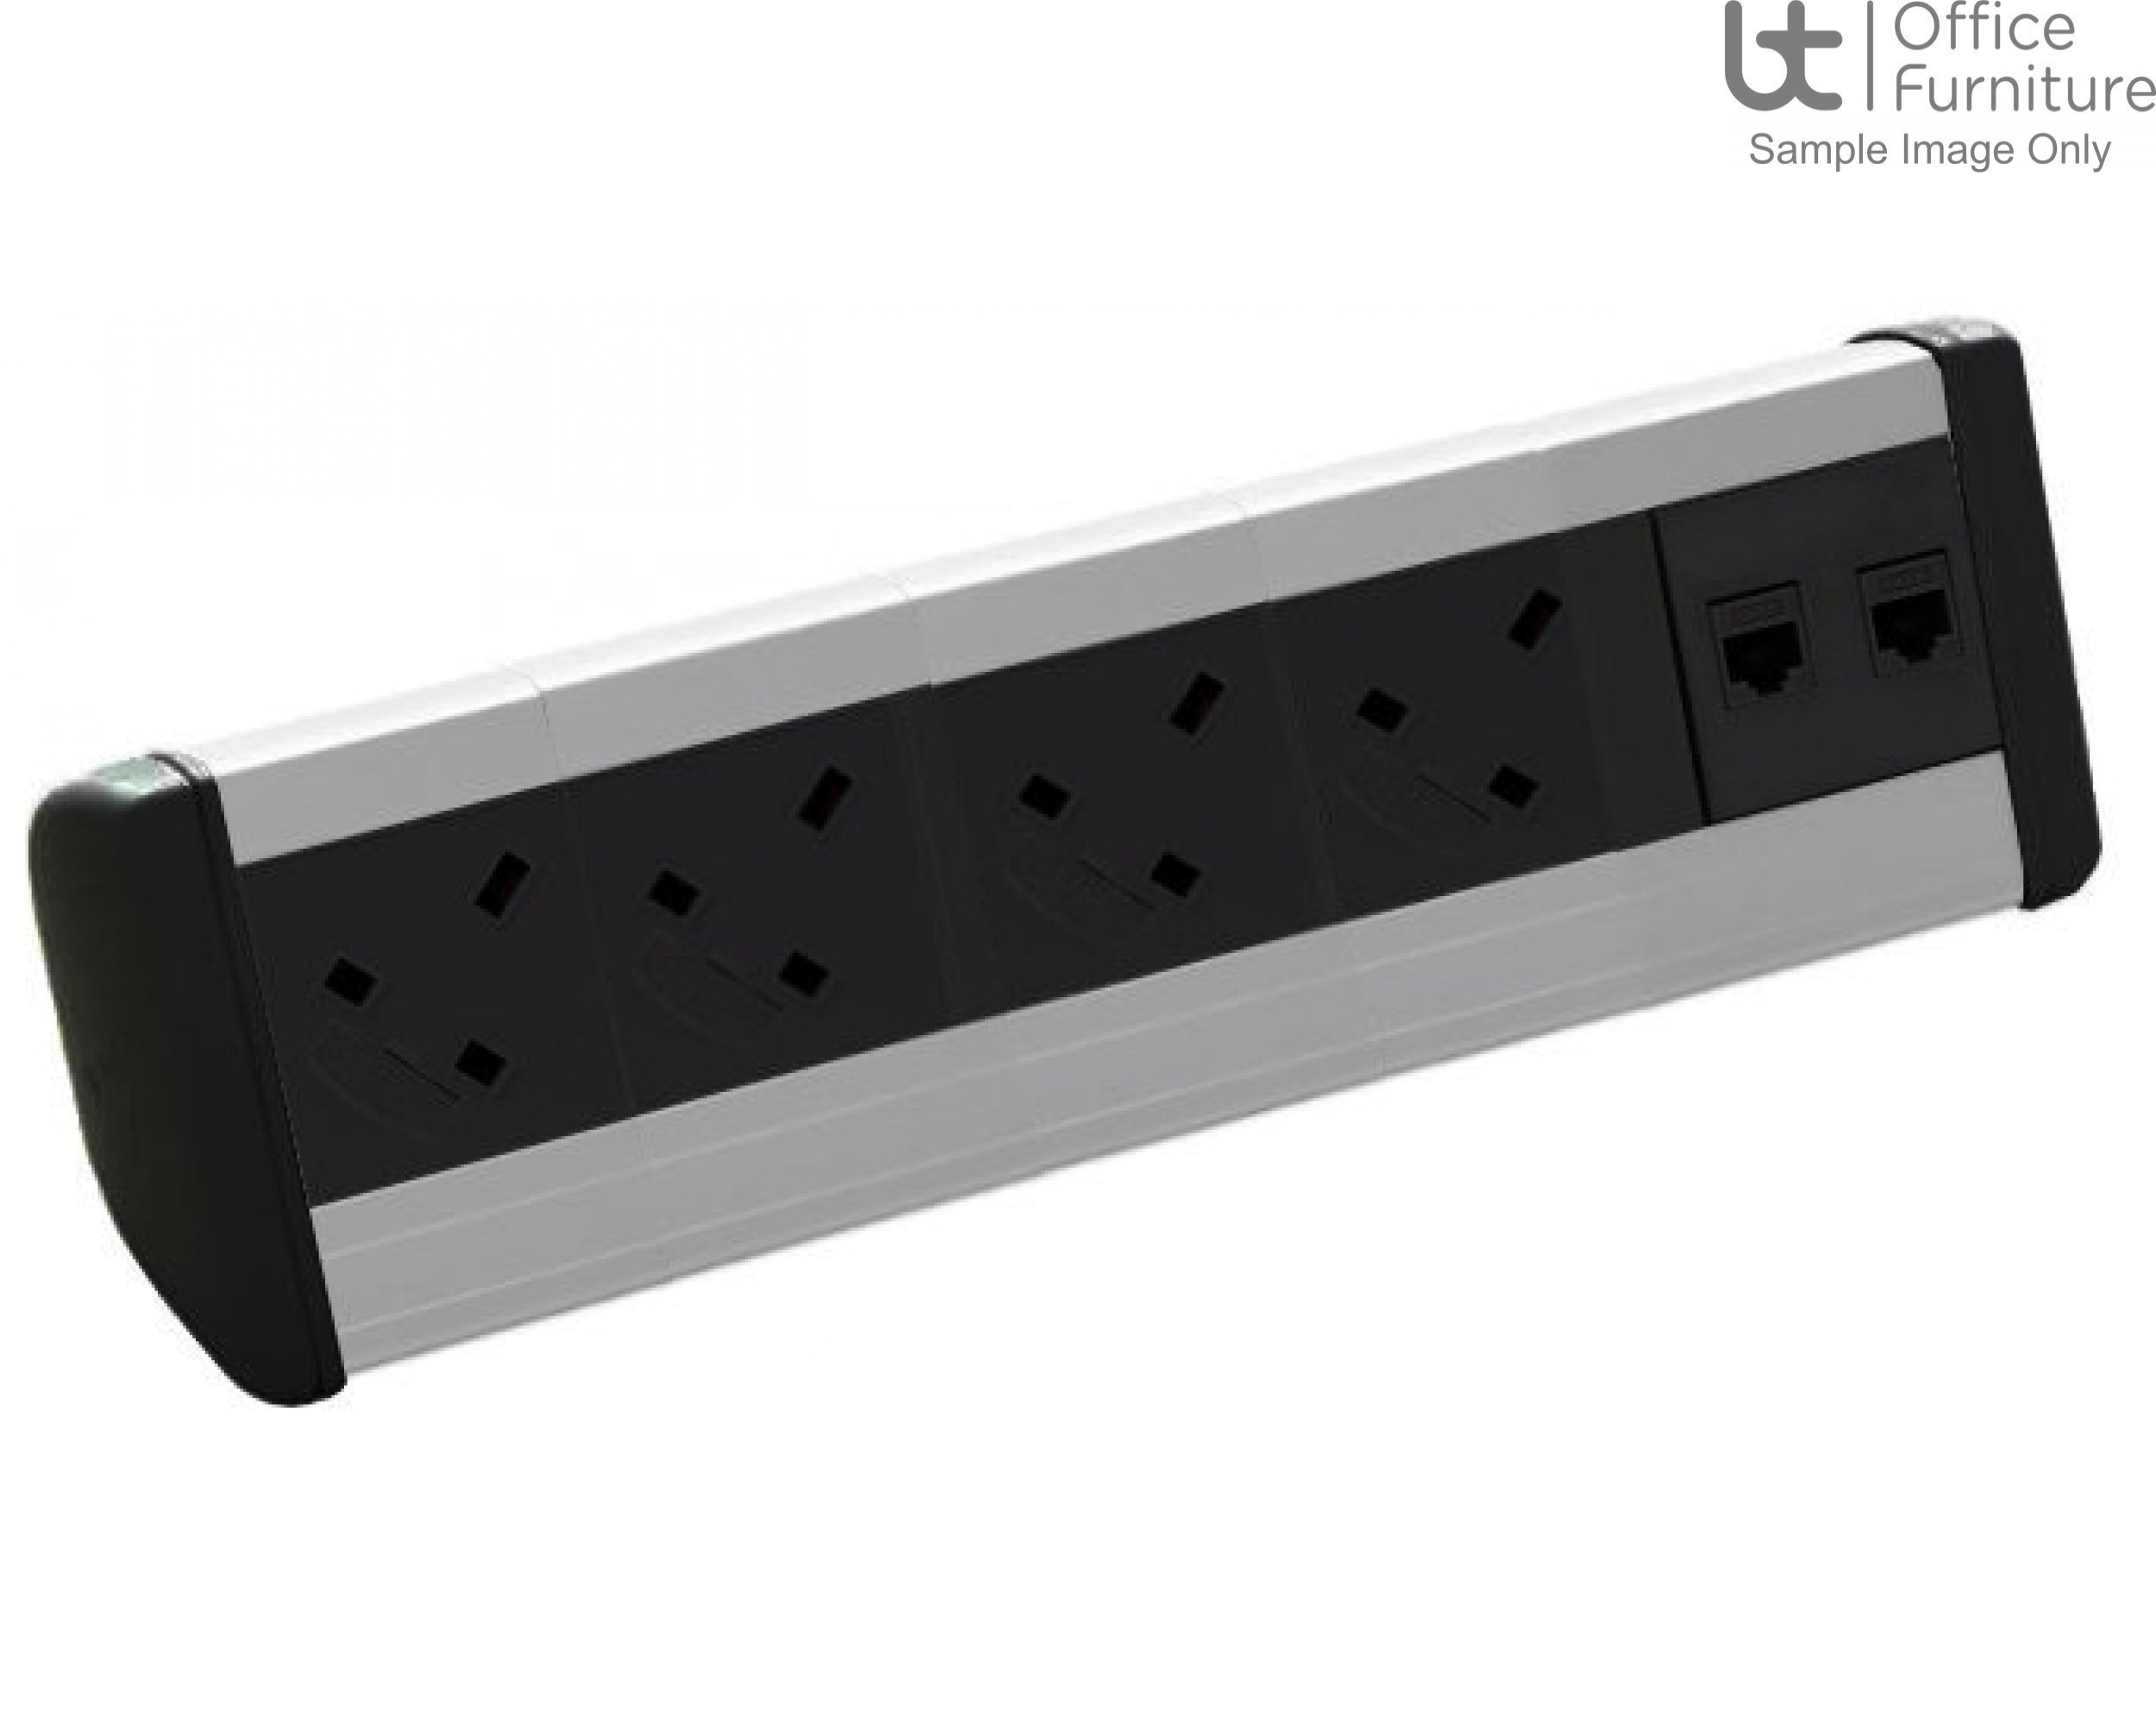 Harmony 4 x power, 1m mains lead to 3-pole connector, 2 x RJ45 data Cat6 sockets only, new end caps (Black fascias & end caps (Silver body)